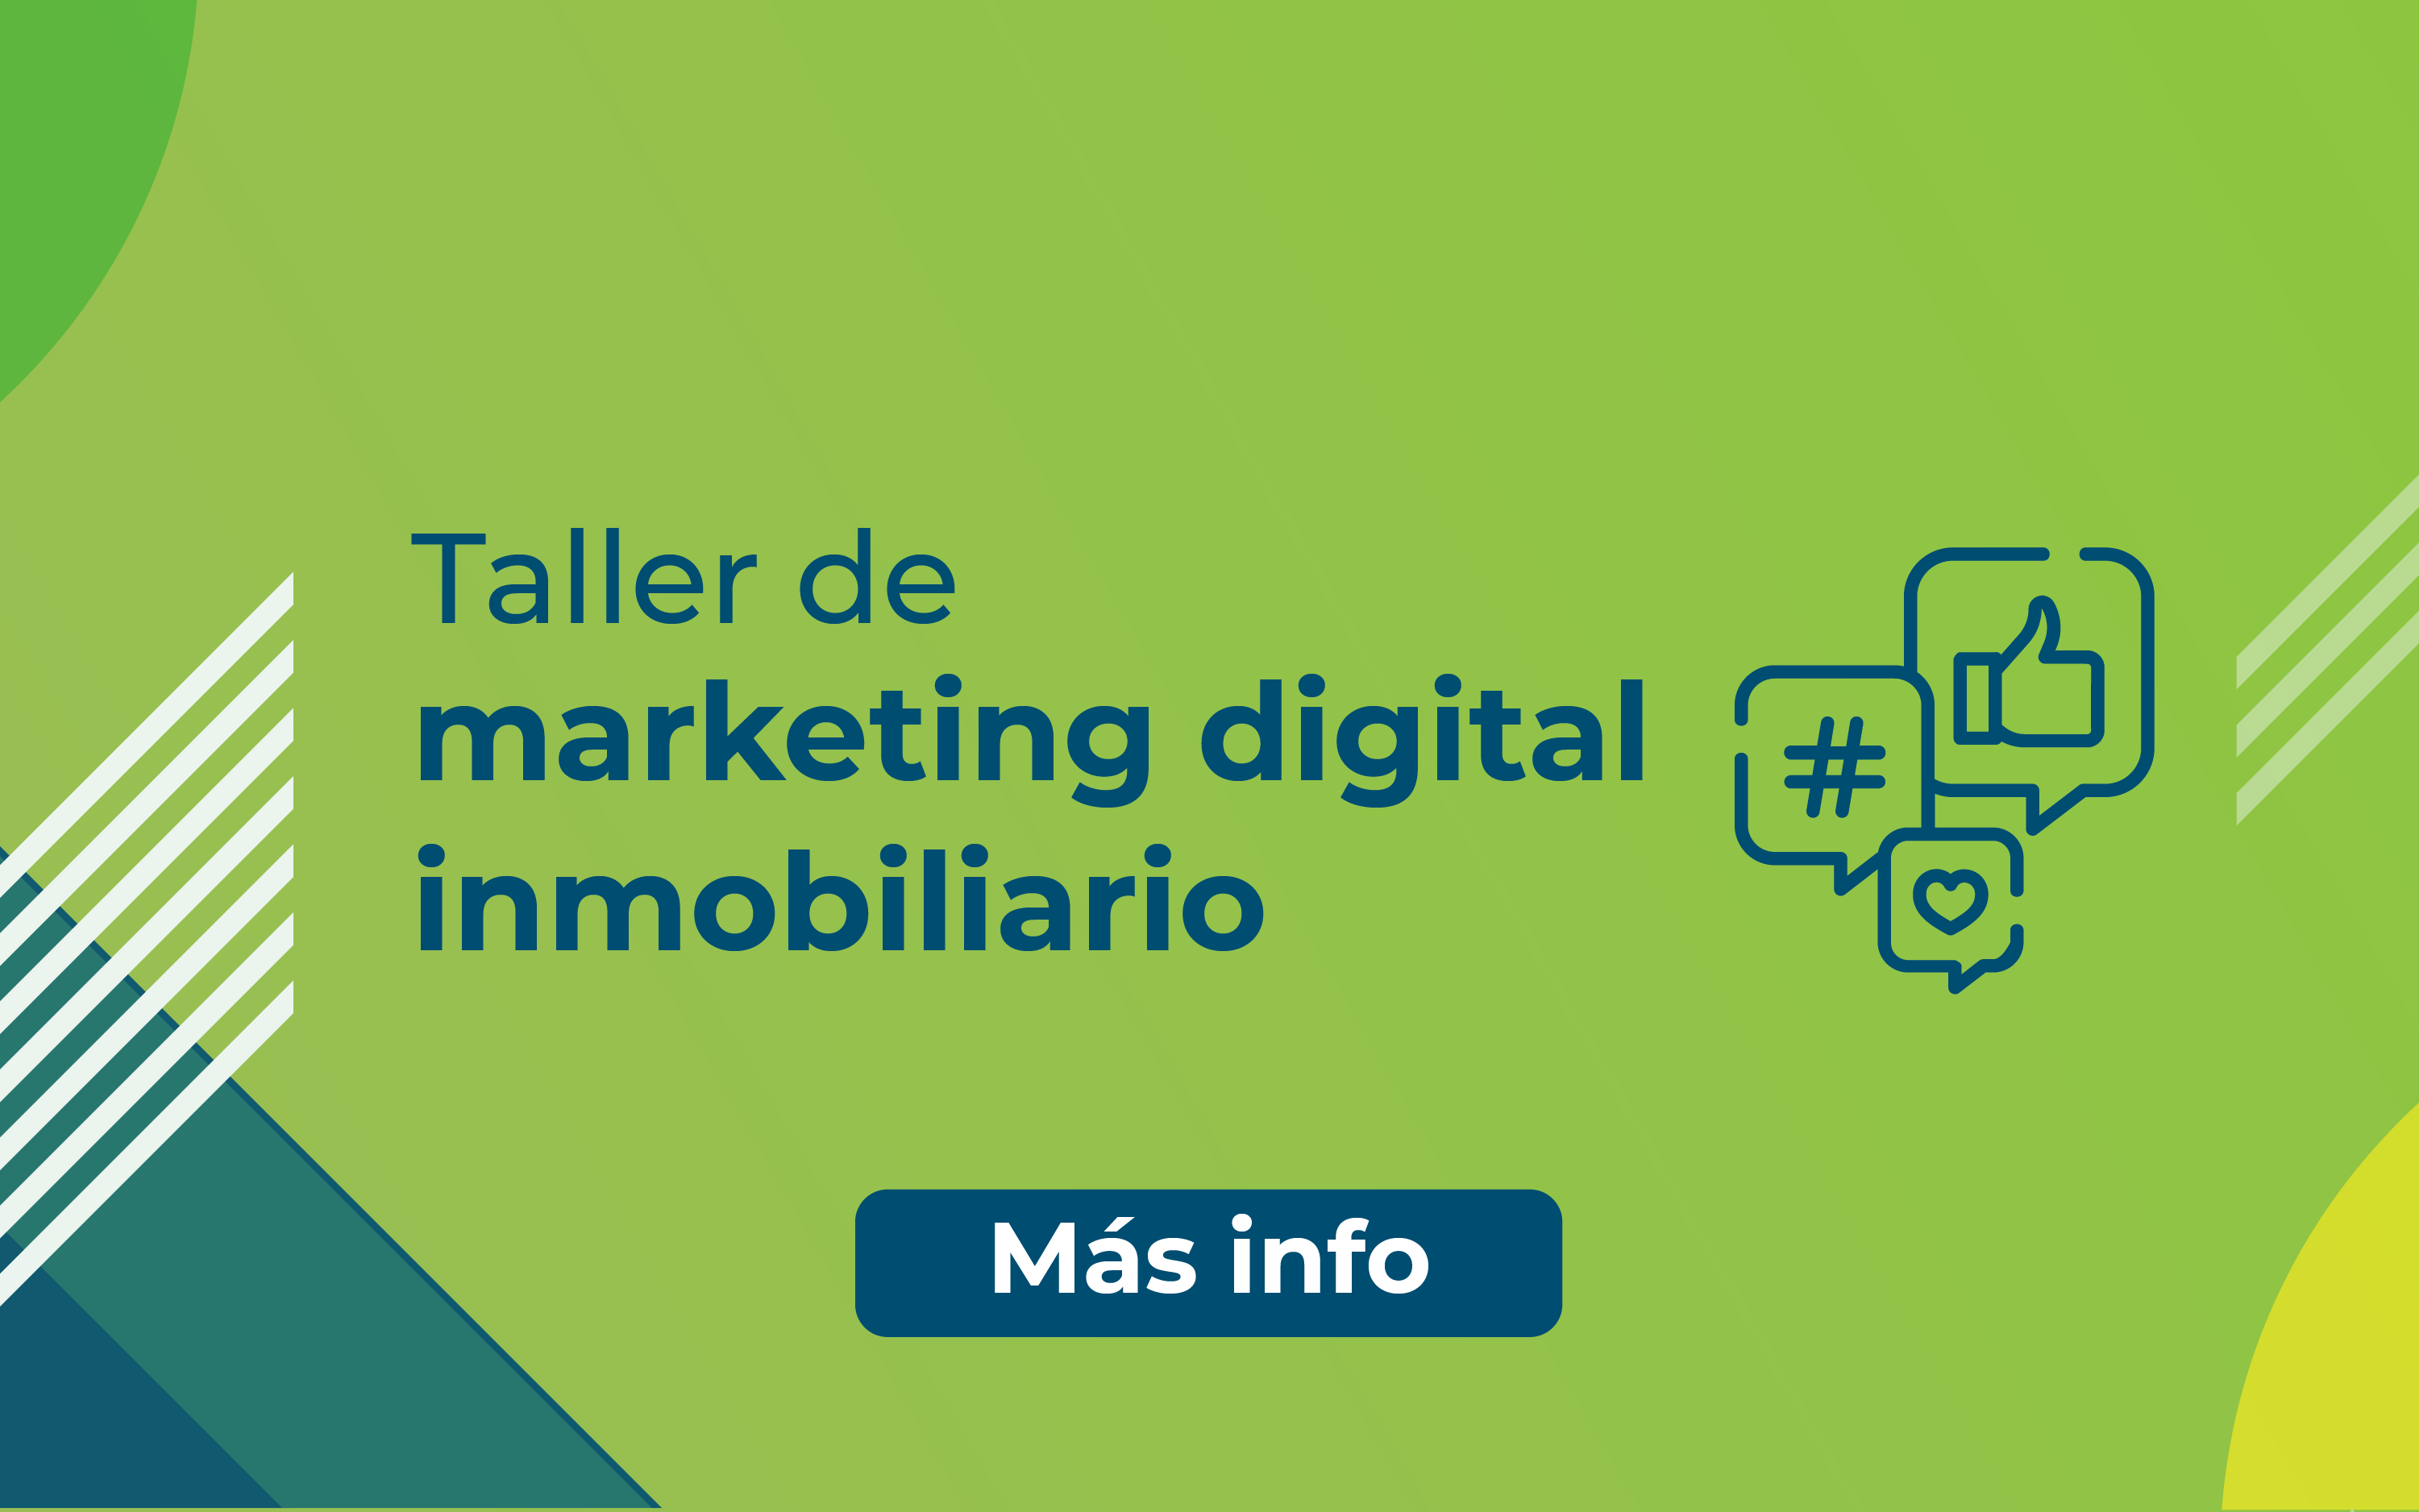 Taller marketing digital inmobiliario